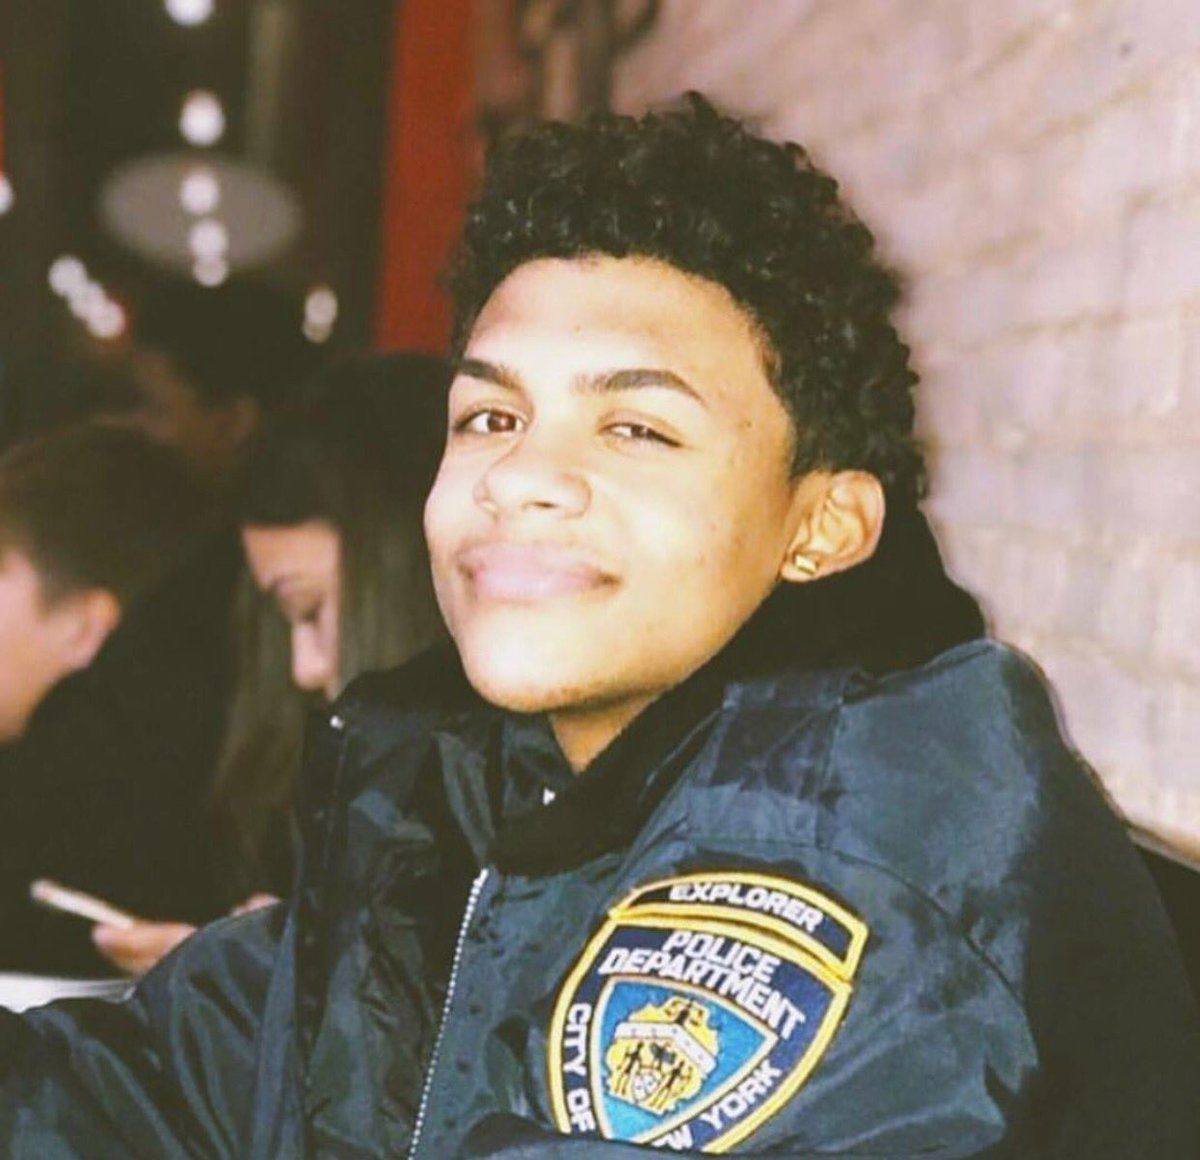 Lesandro Junior Guzman-Feliz 15 who was member of the New York City Police Departments Explorer program was fatally stabbed outside of a New York City bodega on June 20